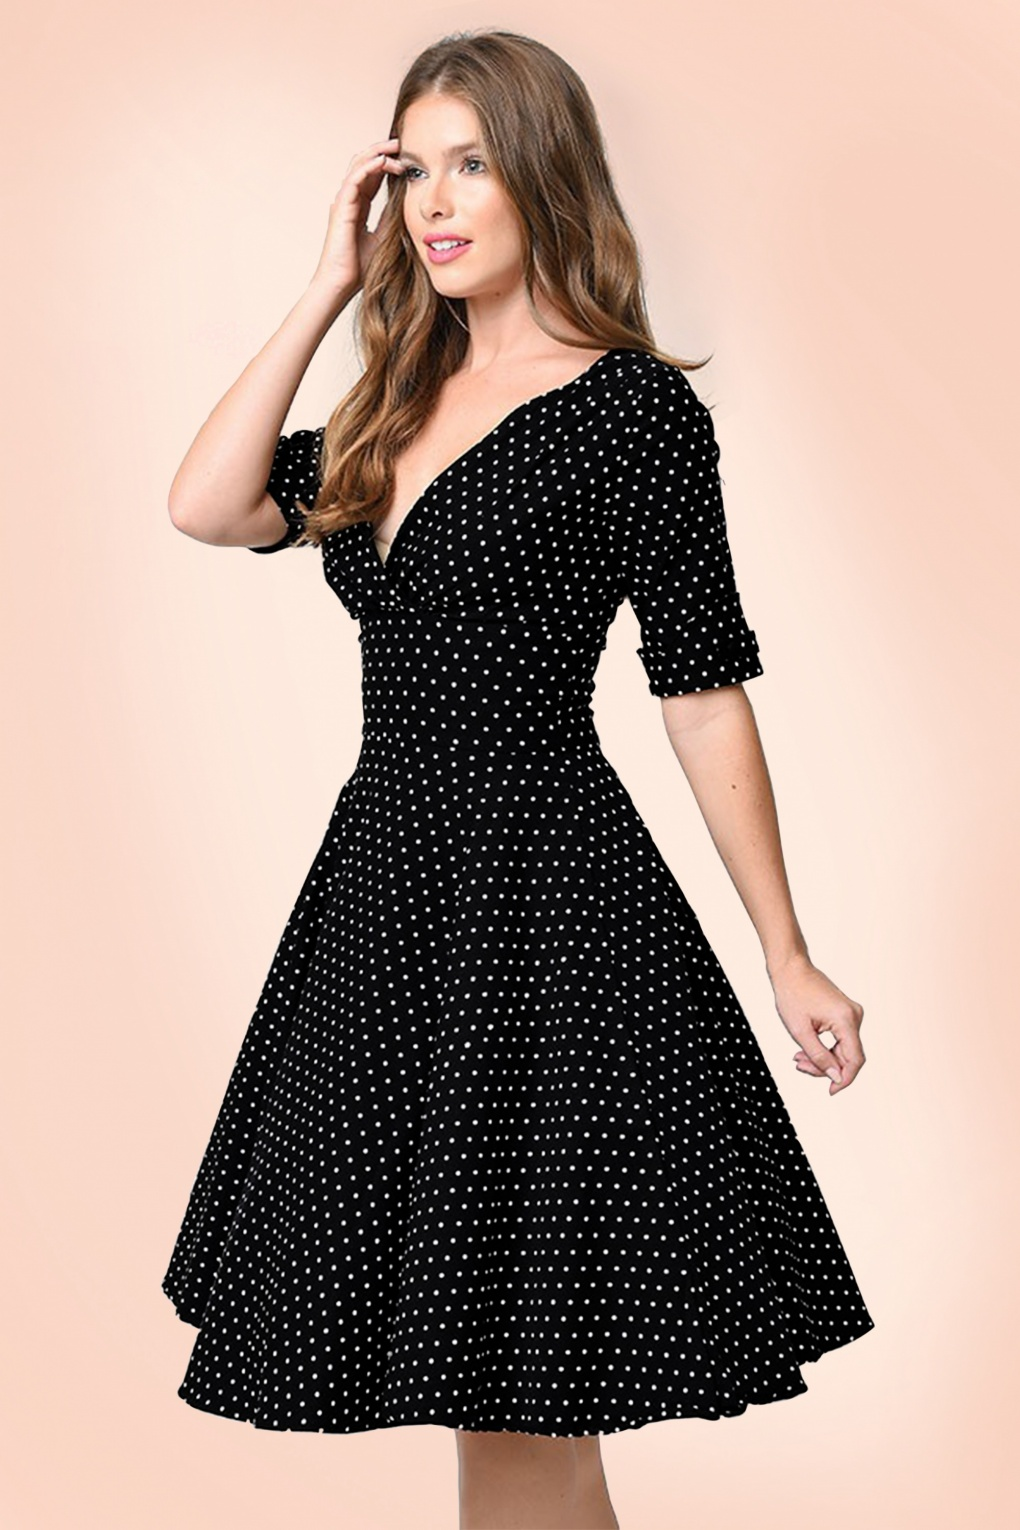 Shop for womens swing dresses online at Target. Free shipping on purchases over $35 and save 5% every day with your Target REDcard.